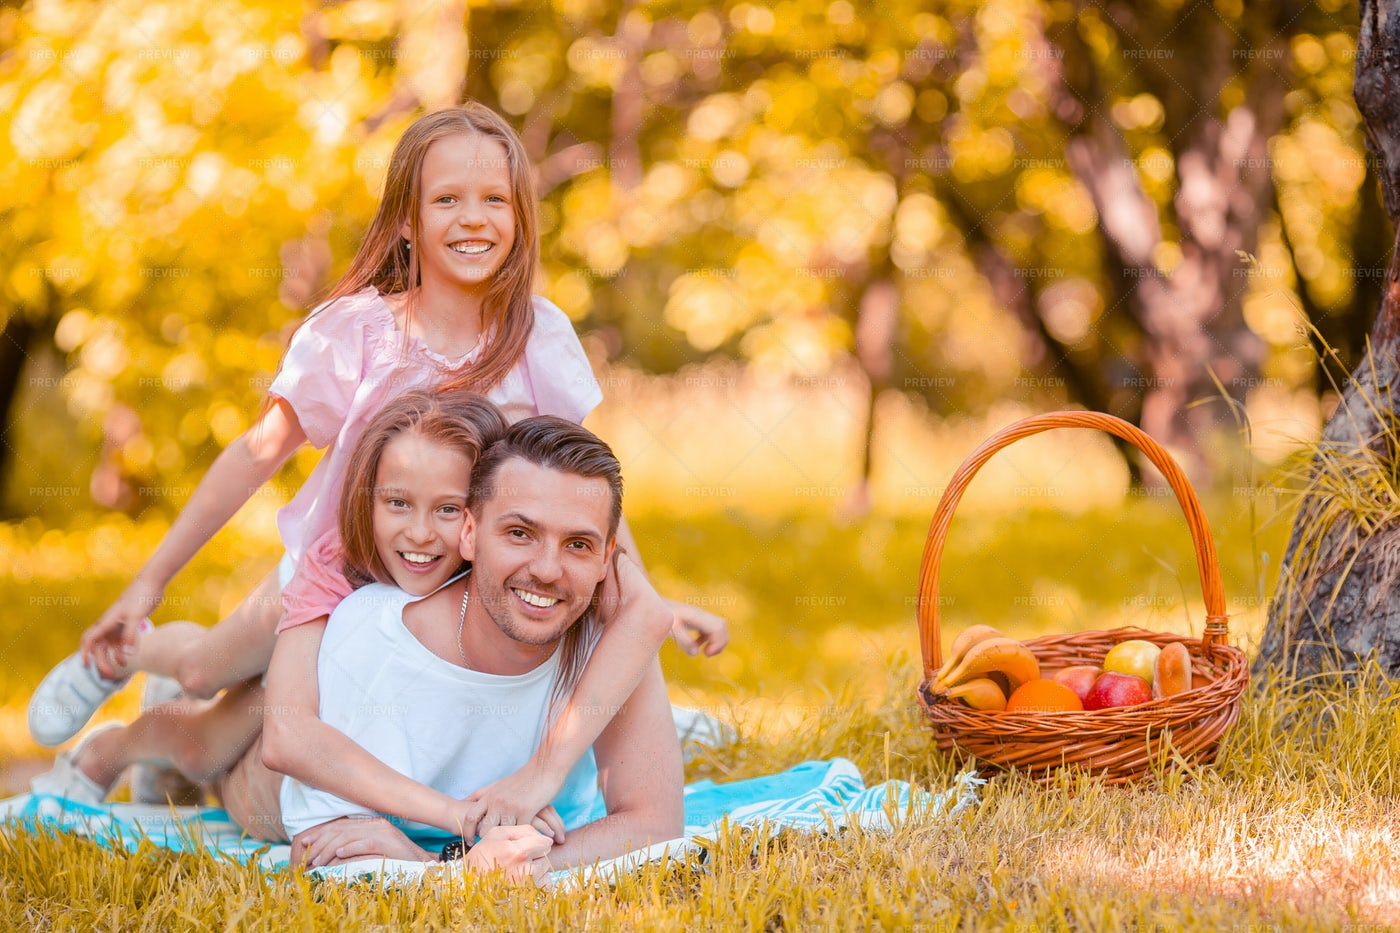 Father And Daughter In A Picnic: Stock Photos